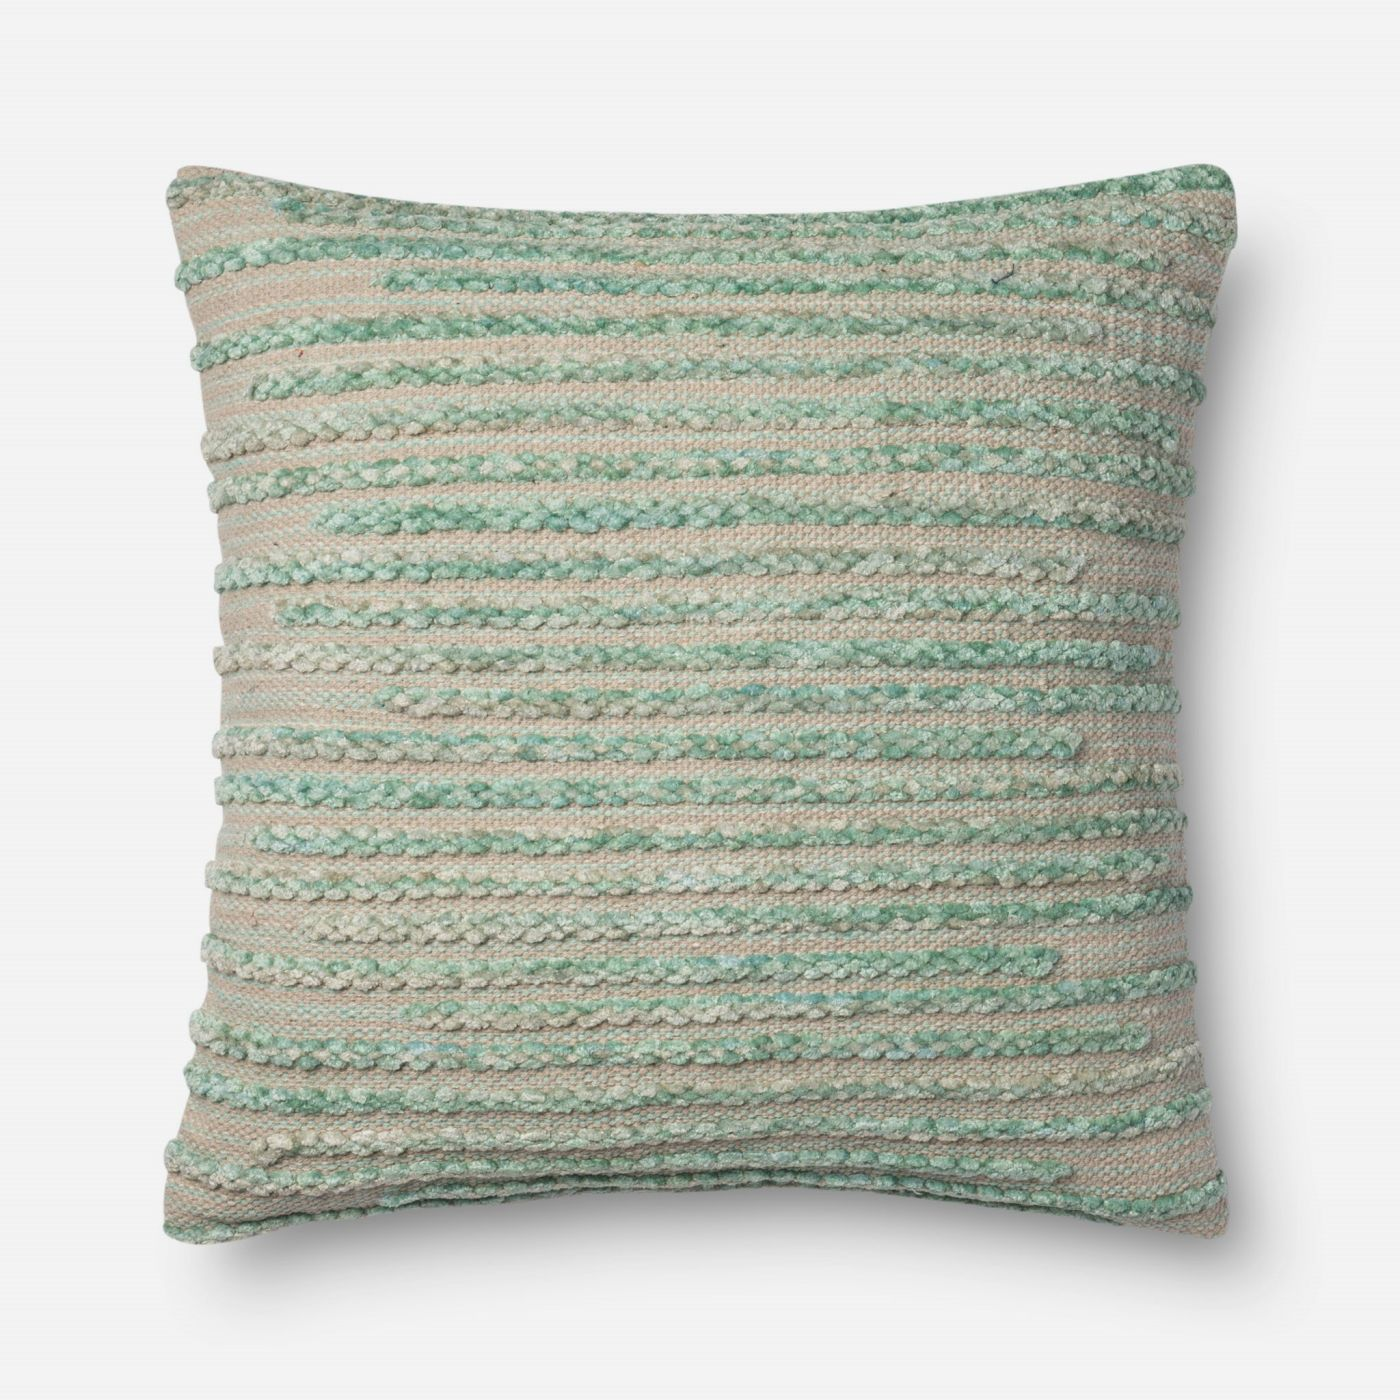 Throw Pillow Warehouse : Loloi Rugs Loloi Silver Sage Decorative Throw Pillow (MIS02) DSETMIS02SISGPIL3. Only $109.00 at ...